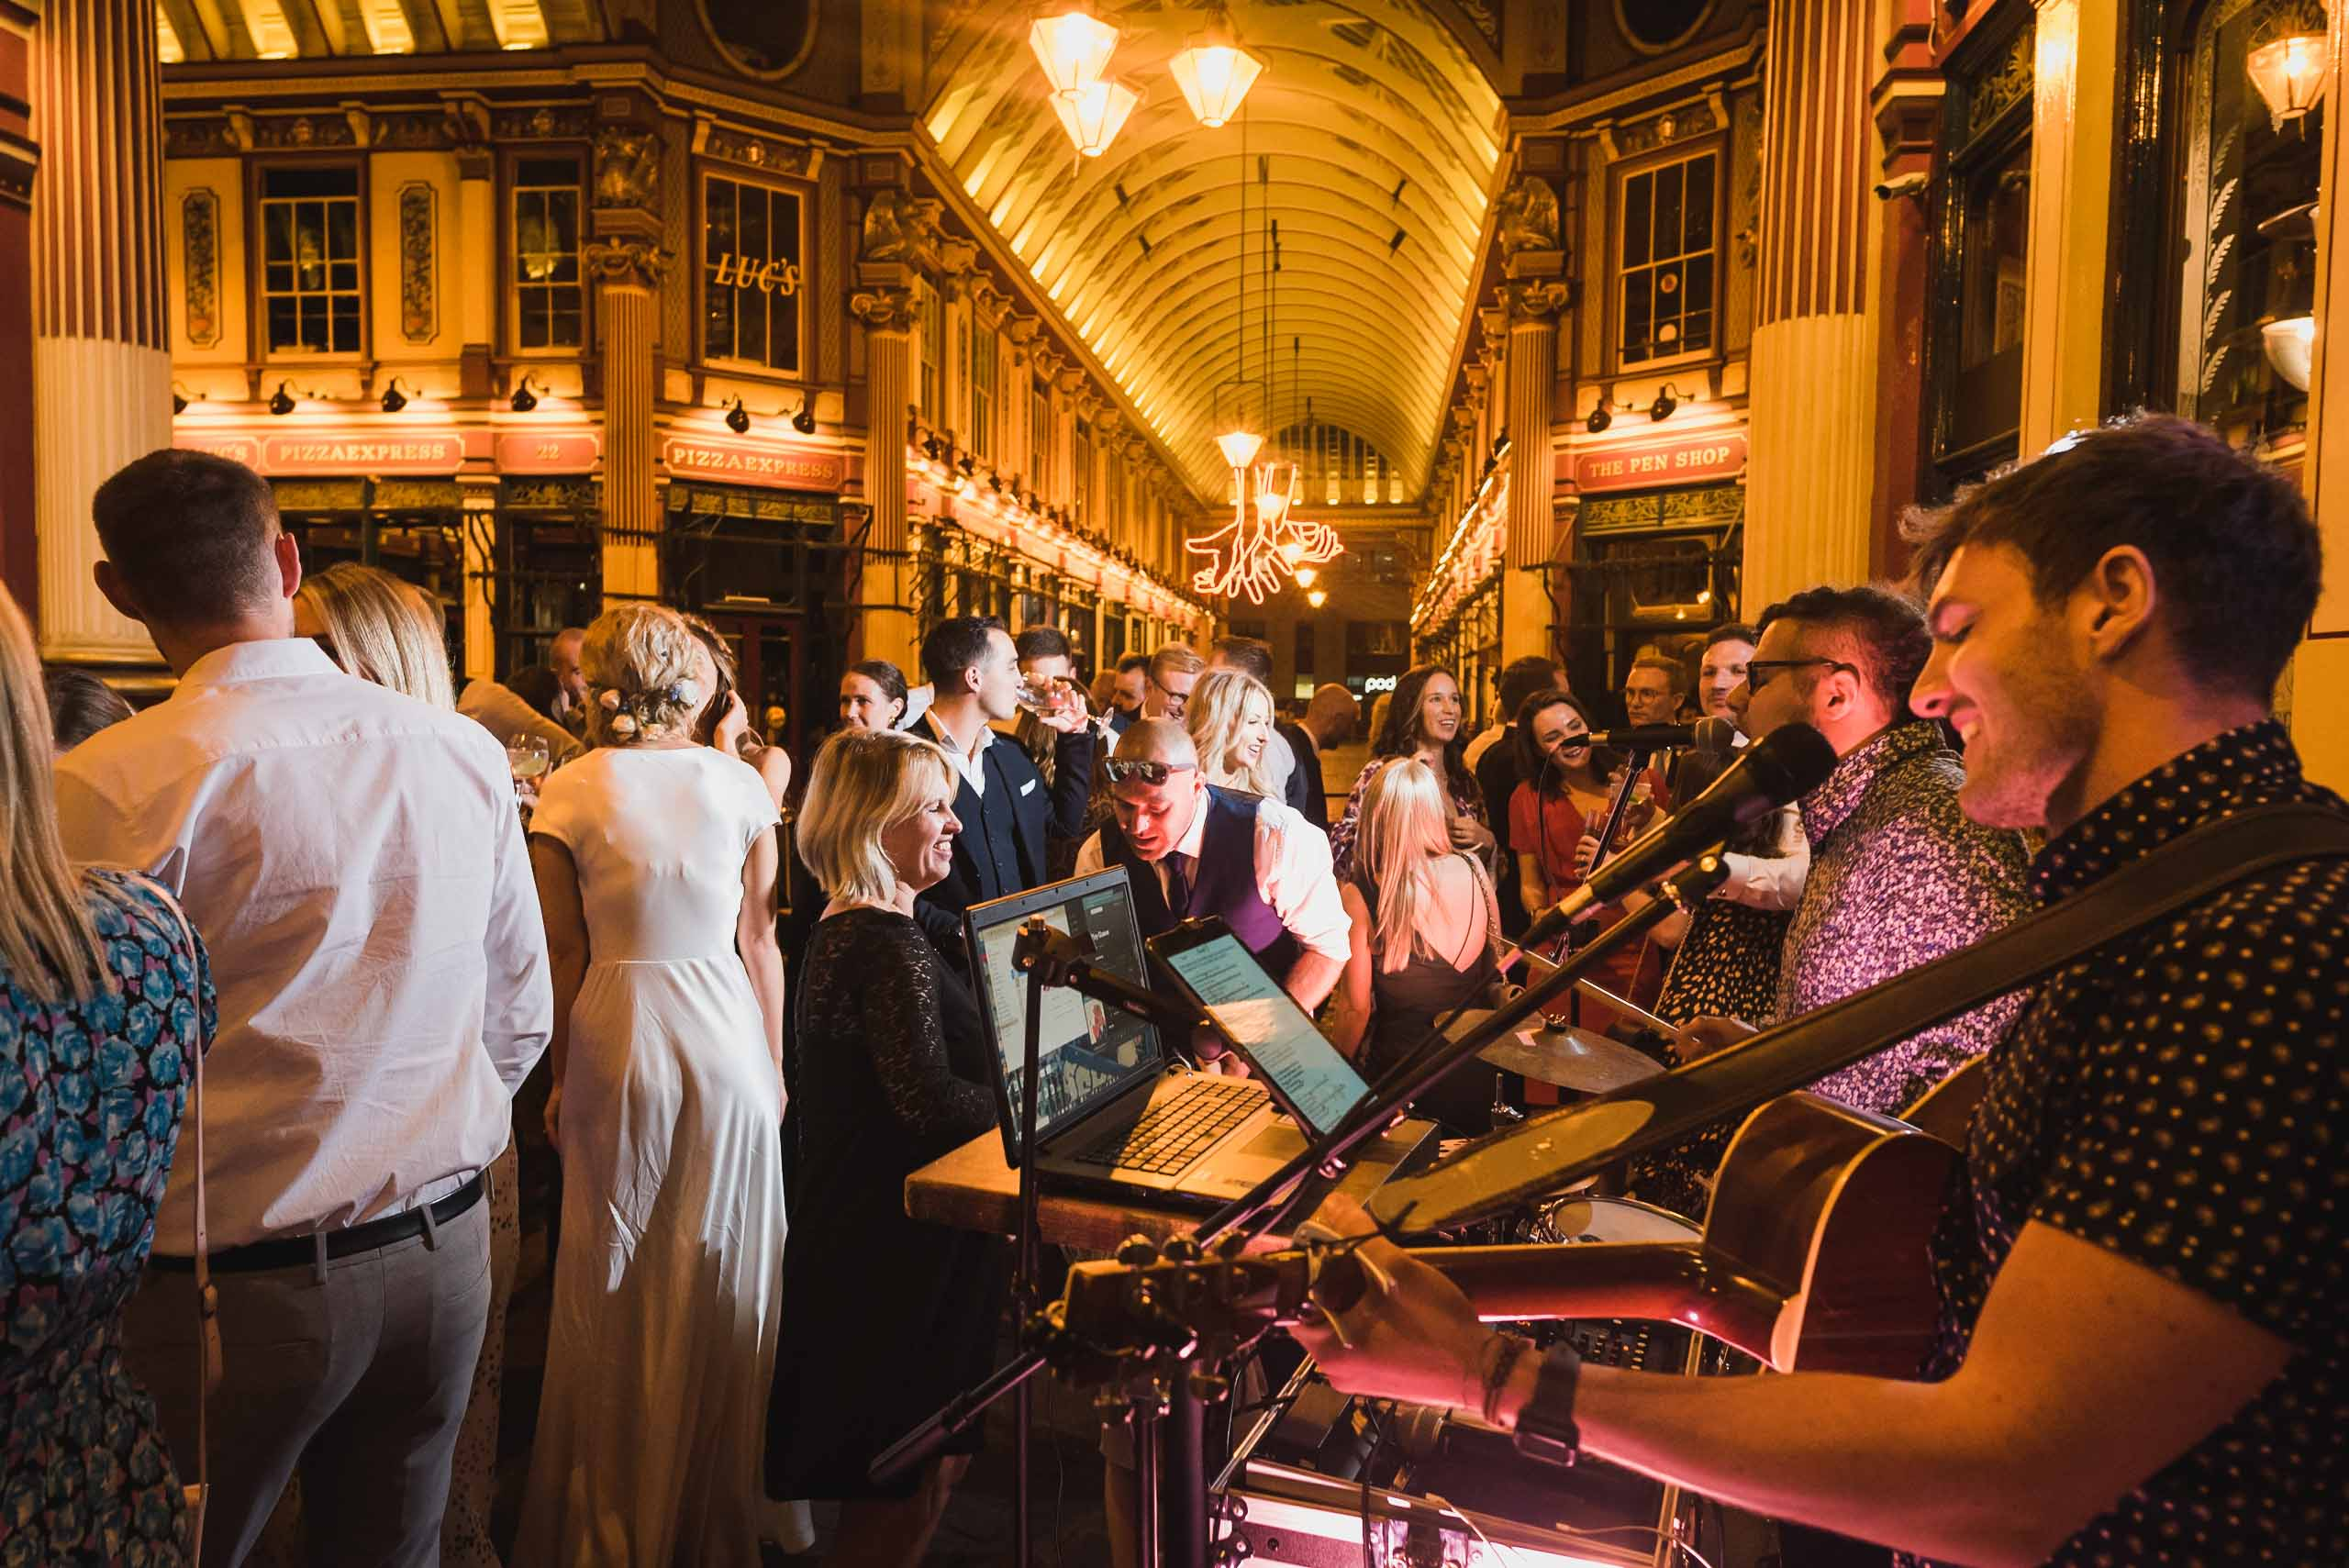 carine bea photography, pub wedding London , The Lamb Tavern Leadenhall, crazy dance